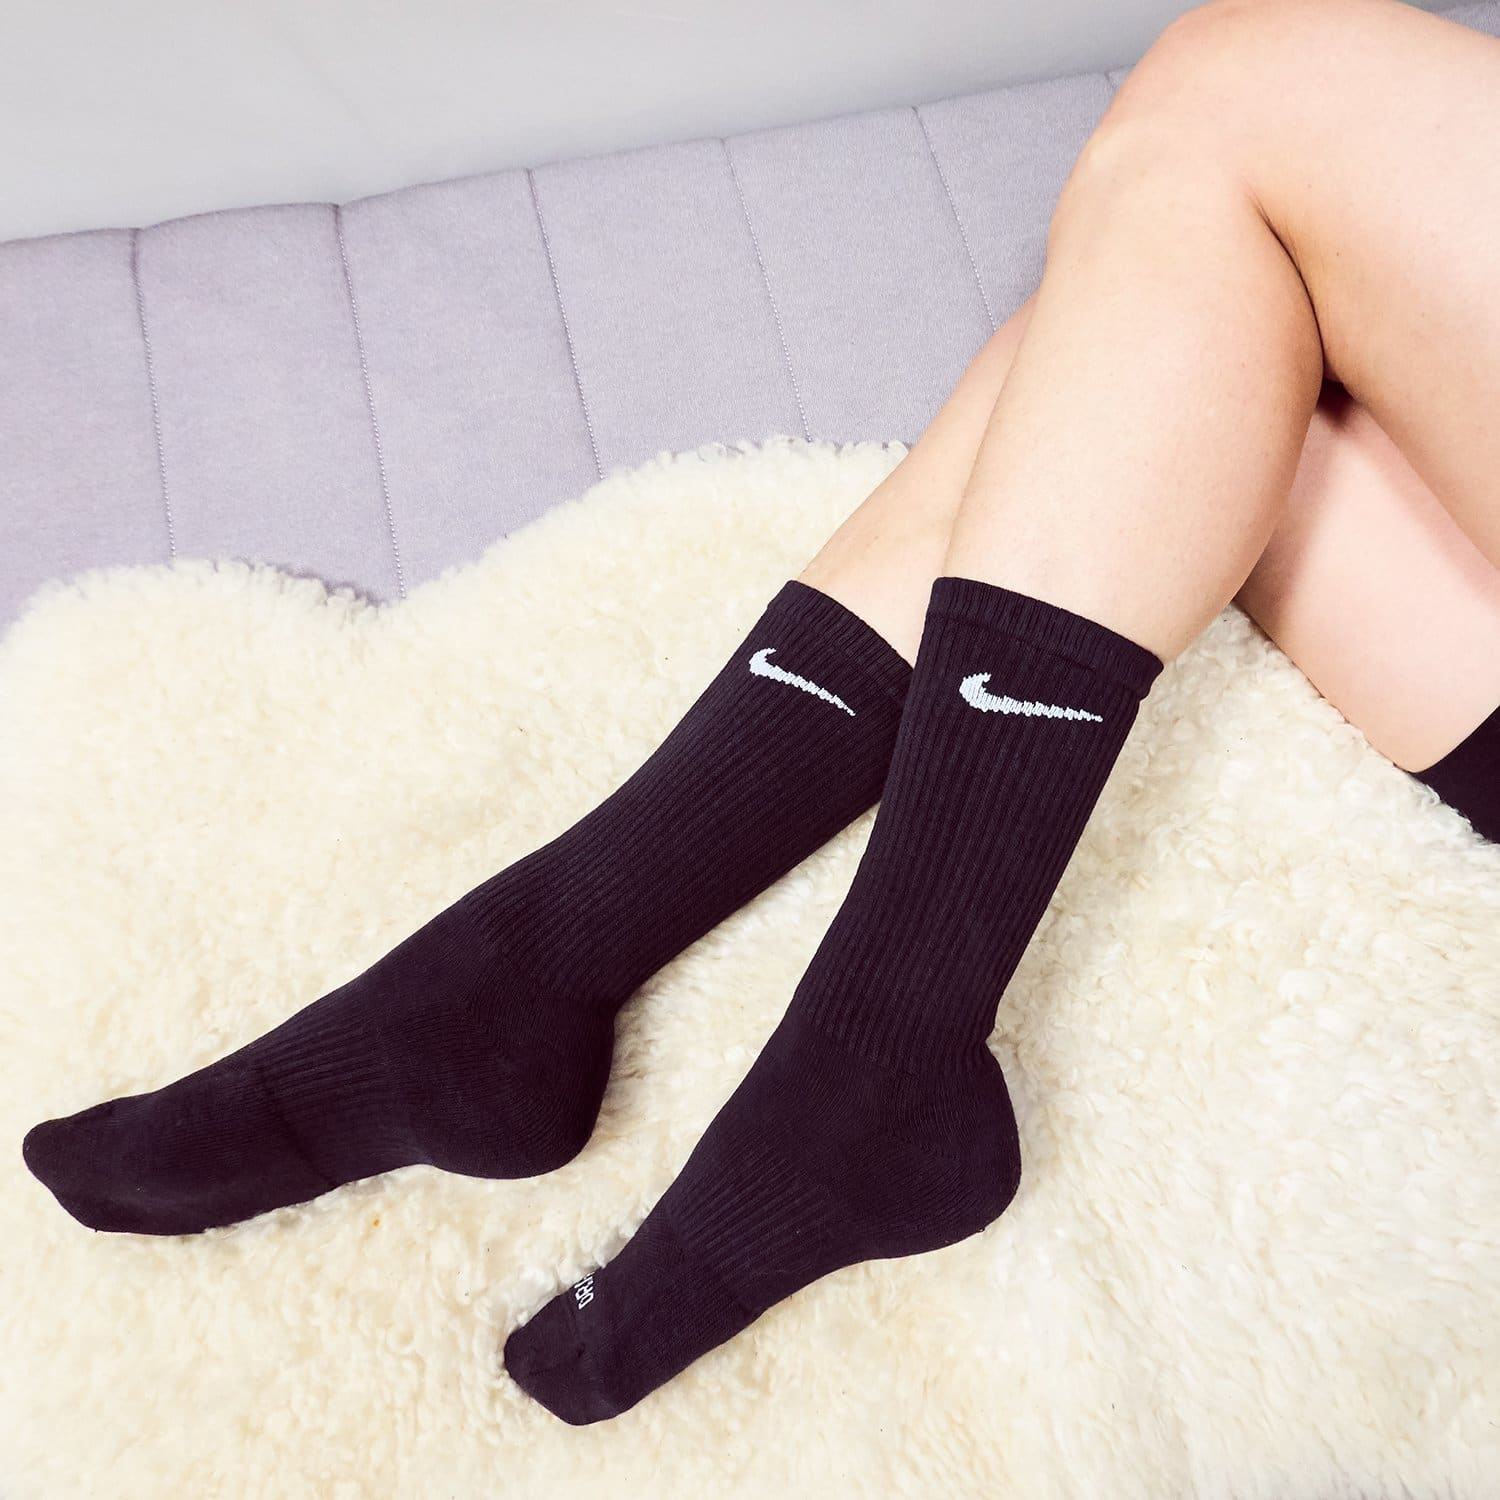 Nike Performance Crew Socks - Black Black, Crew, Friends